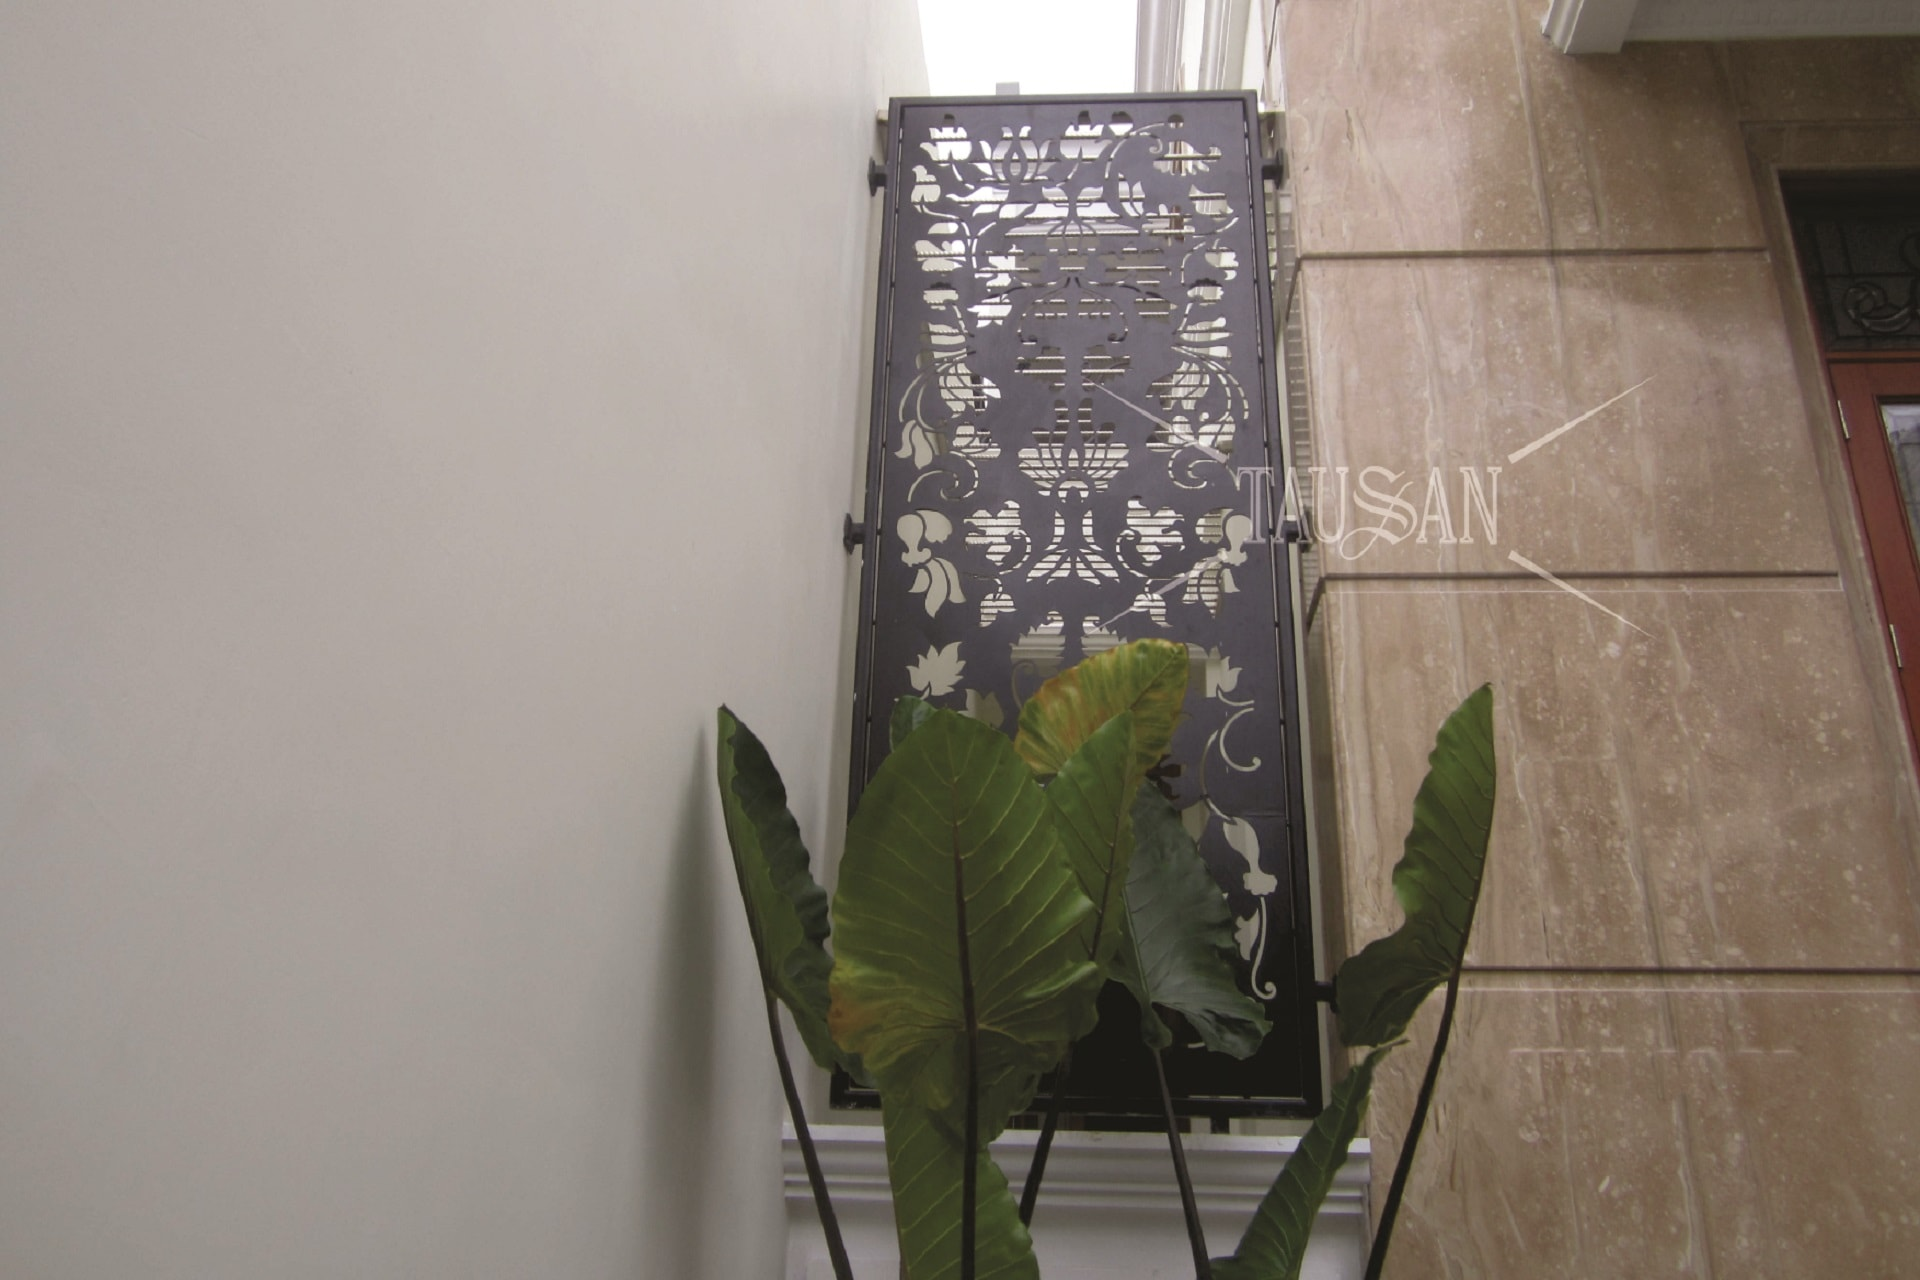 Decorative Wall 2 - PD02 - potong-plat-solo